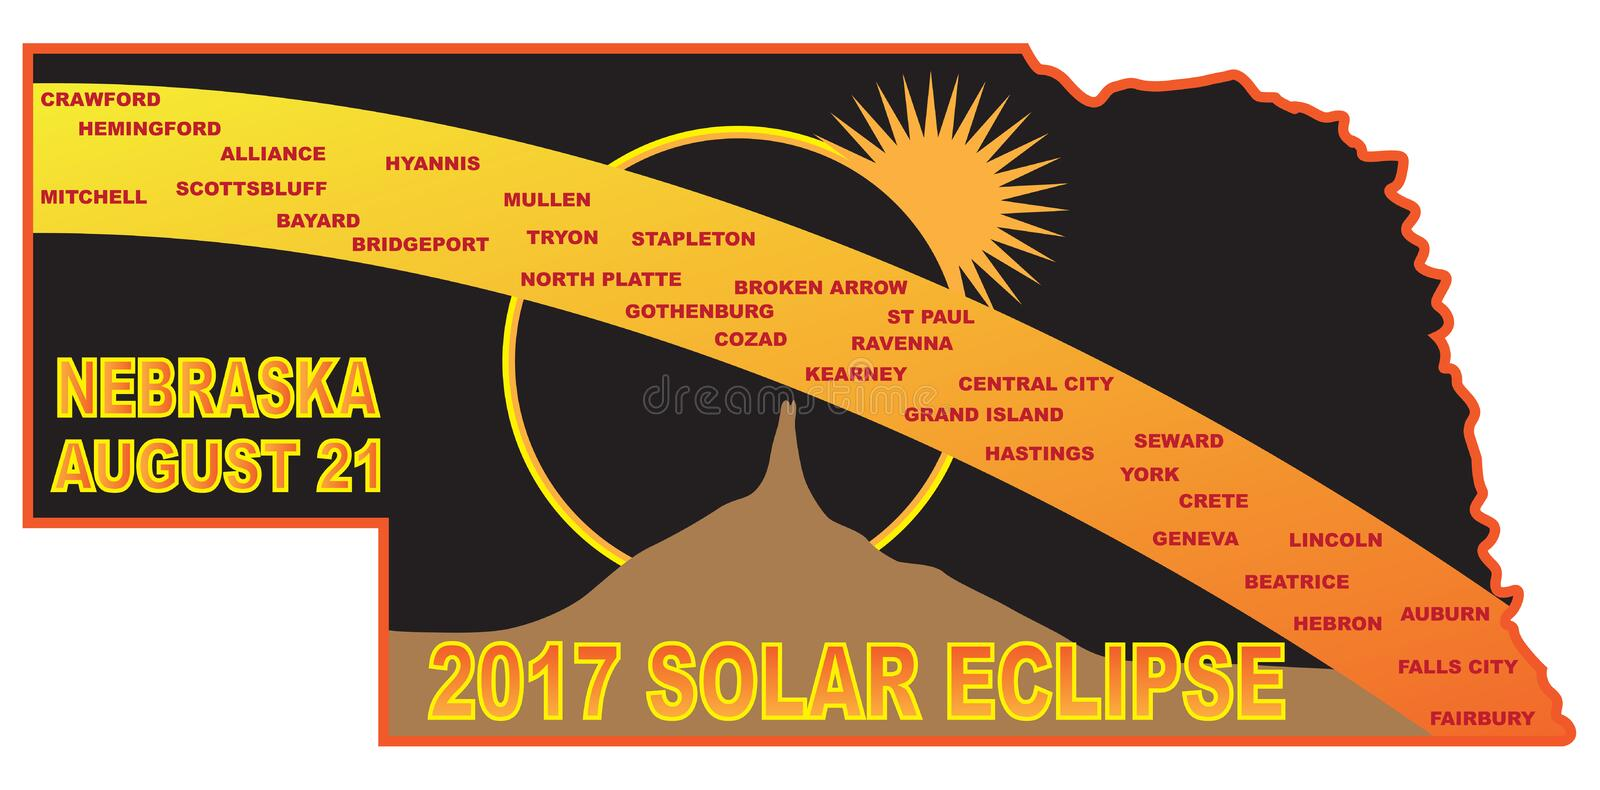 2017 Solar Eclipse Across Nebraska Cities Map vector Illustration royalty free illustration